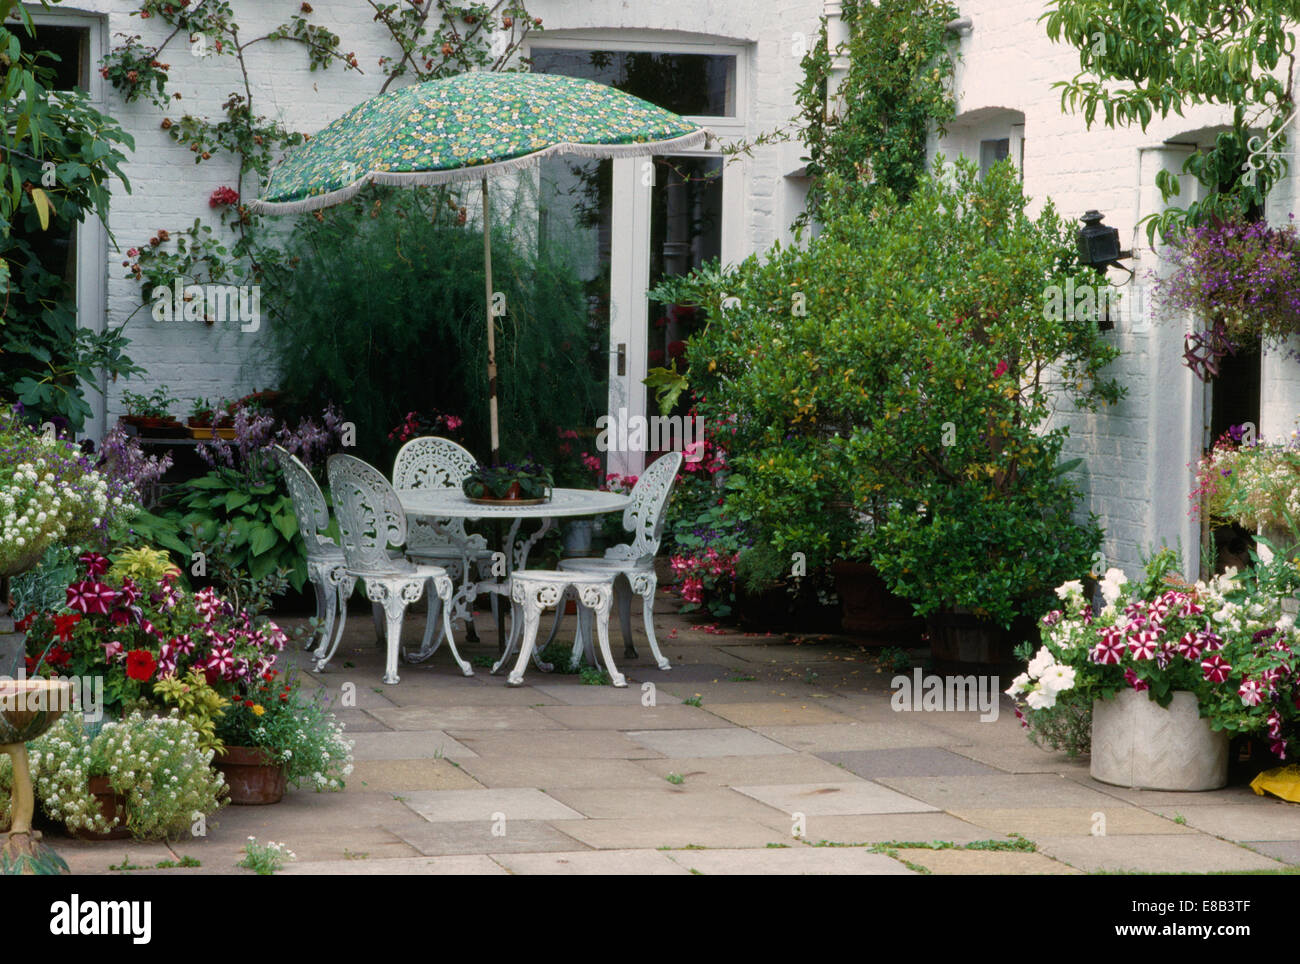 Green Umbrella Above White Wrought Iron Table And Chairs On Patio With Pots  Of Colorful Annuals